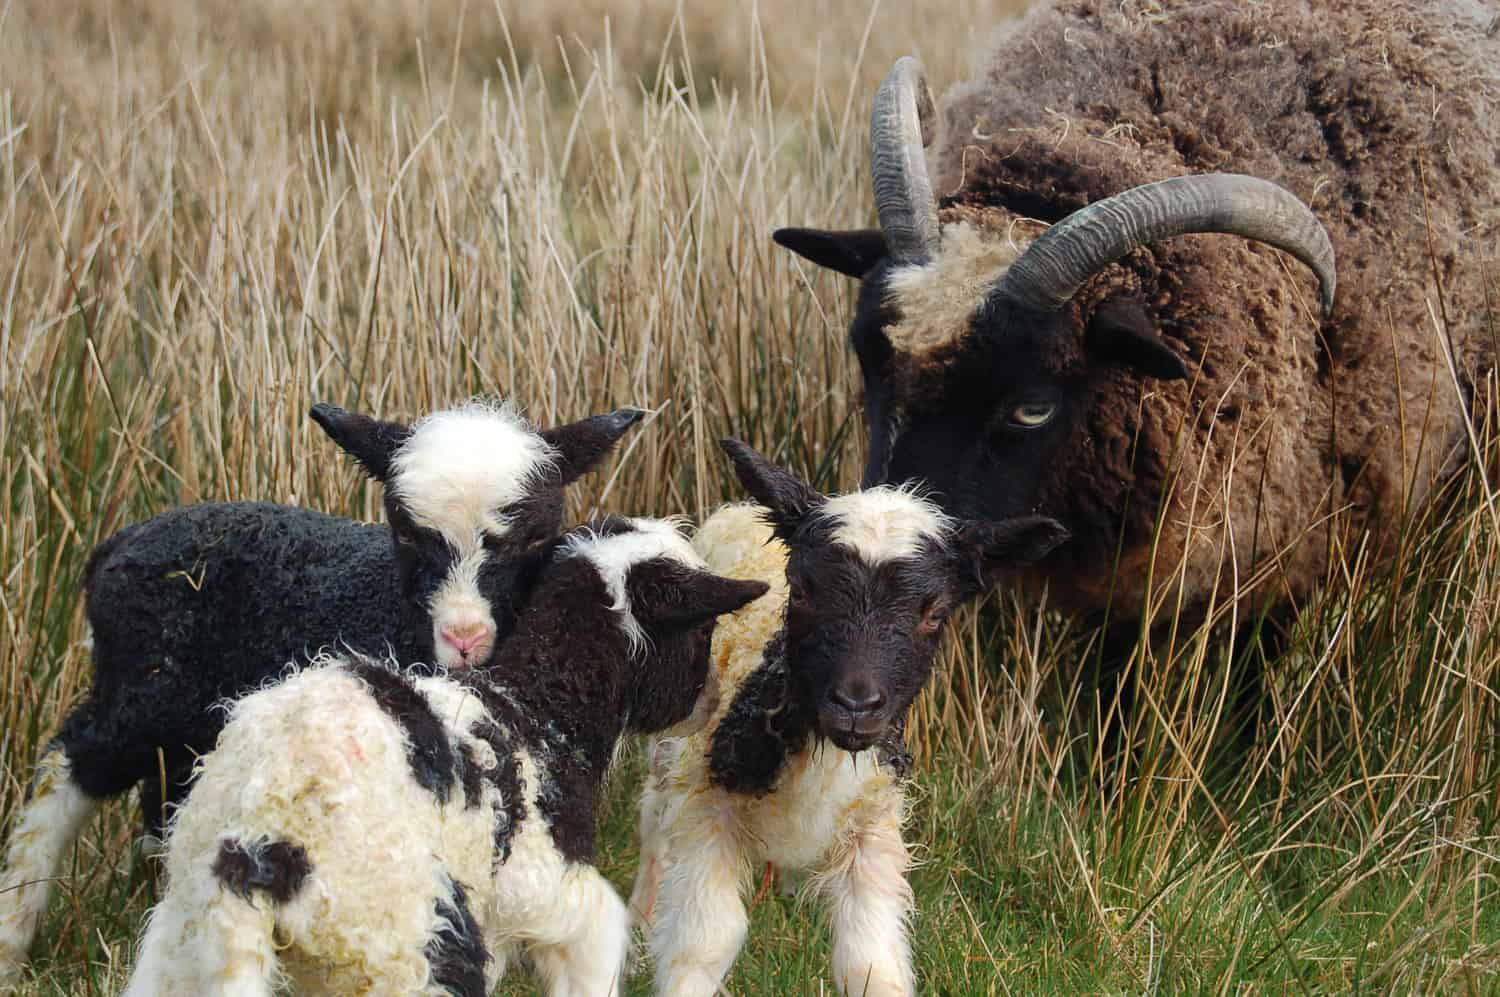 Minnie jacob cross shetland sheep patchwork sheep kind fibre wool moorit spotted triplet lambs